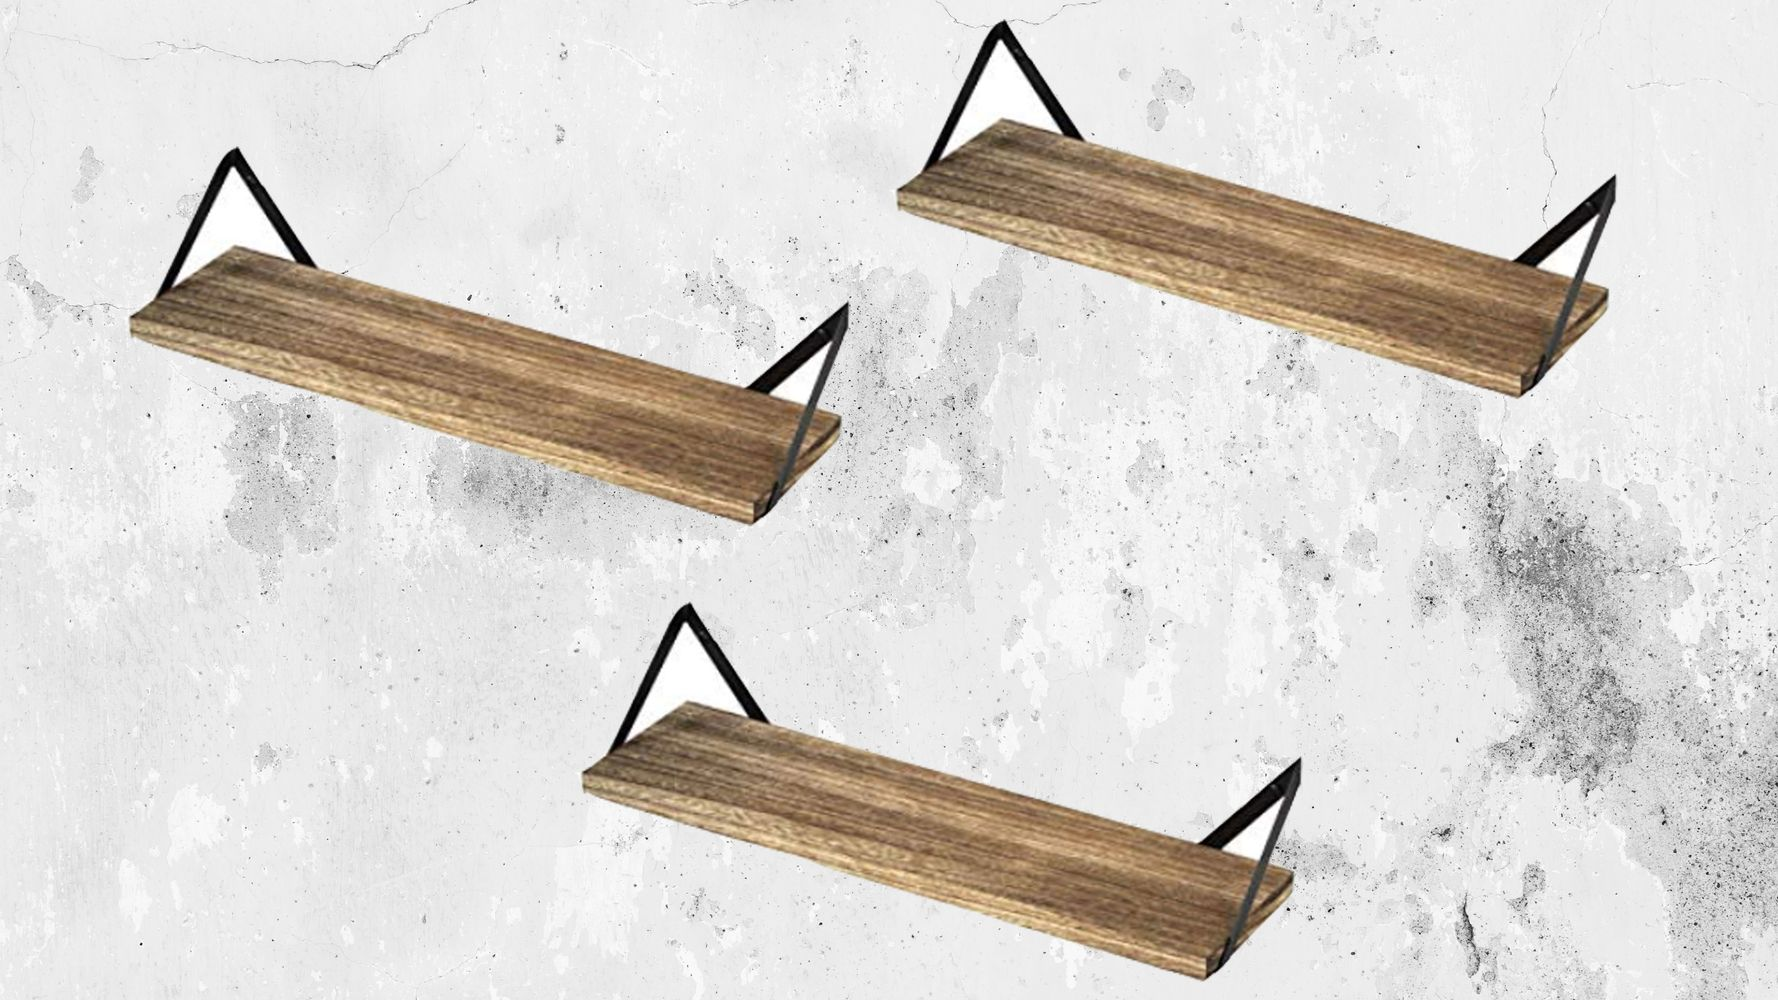 floating shelves on to store your bits and bobs uk 5c80fe05e4b0e62f69ea21d0